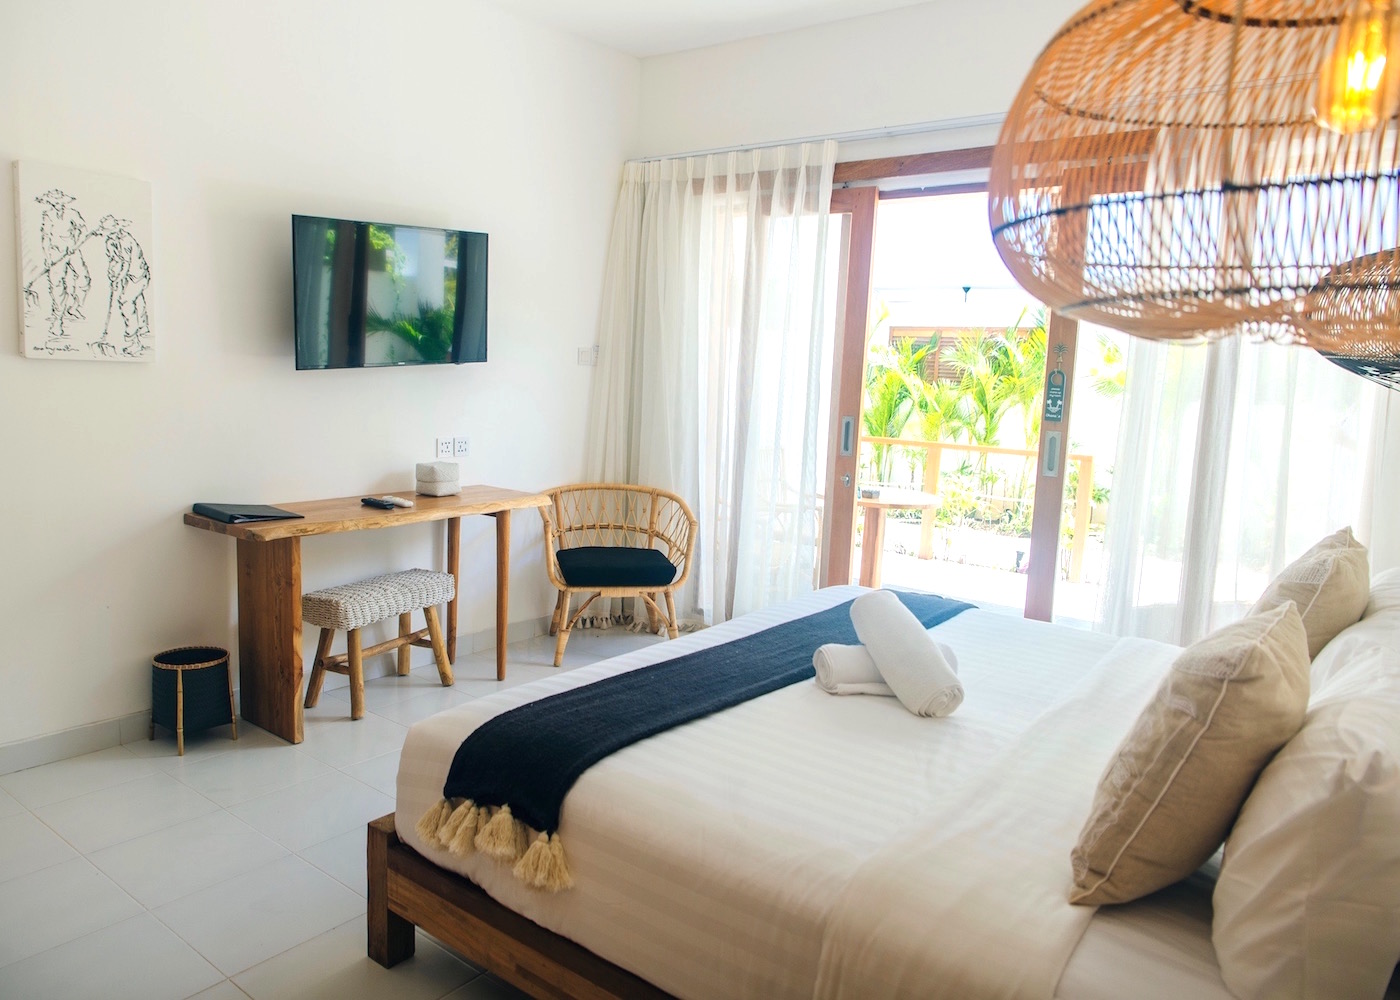 Ohana's boutique hotel on Nusa Lembongan island in Bali, Indonesia